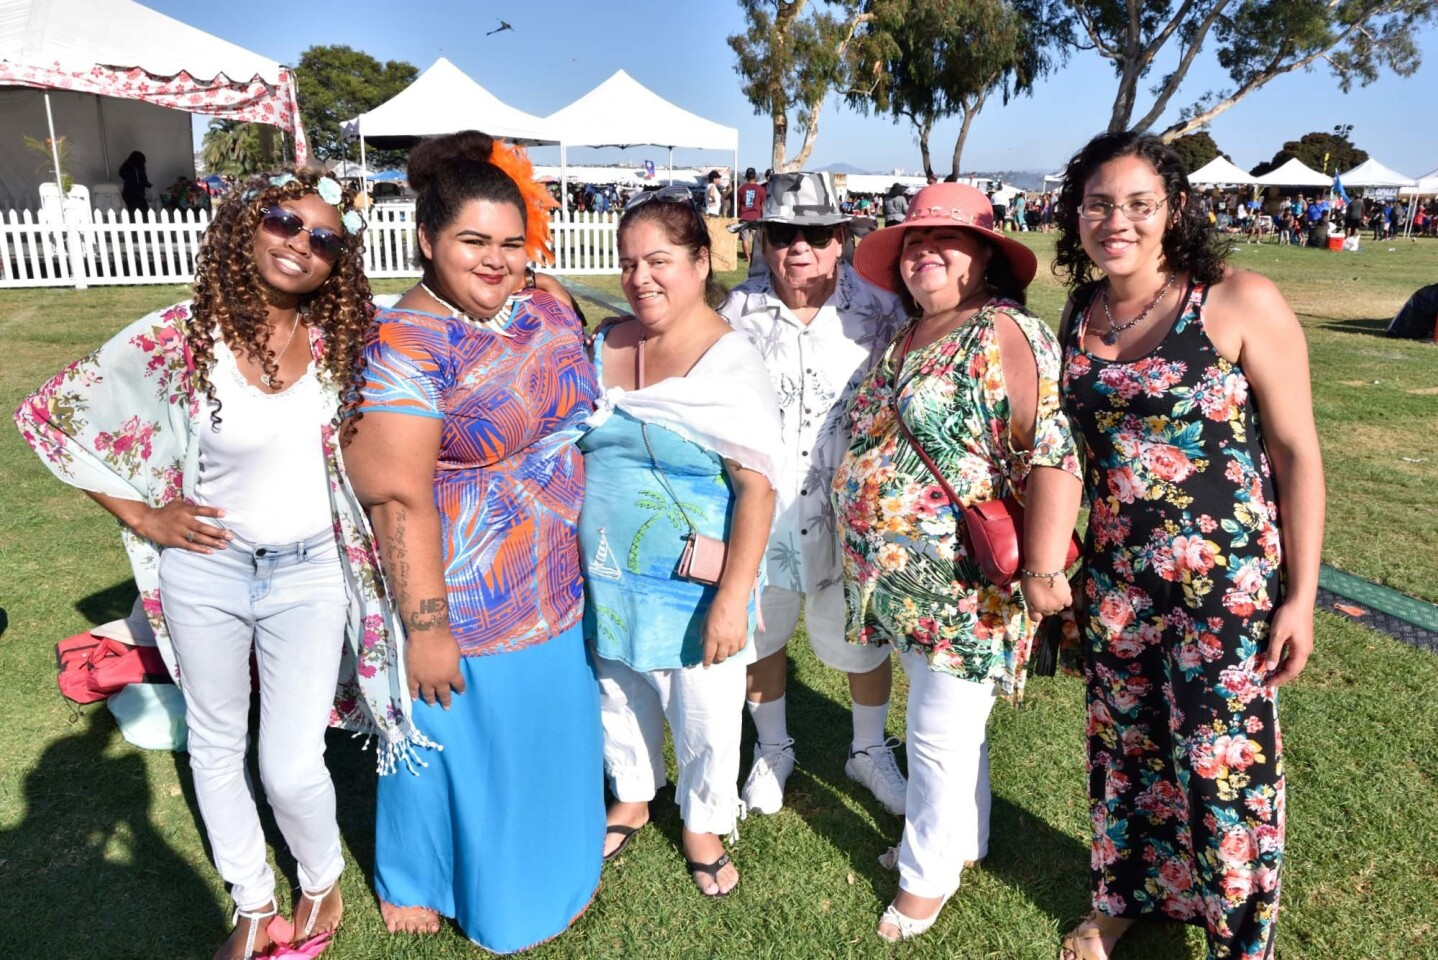 It was a celebration of the island lifestyle and culture during the annual Pacific Islander Festival in Mission Beach on Saturday, Sept. 23, 2017. (Jesse Arroyo)